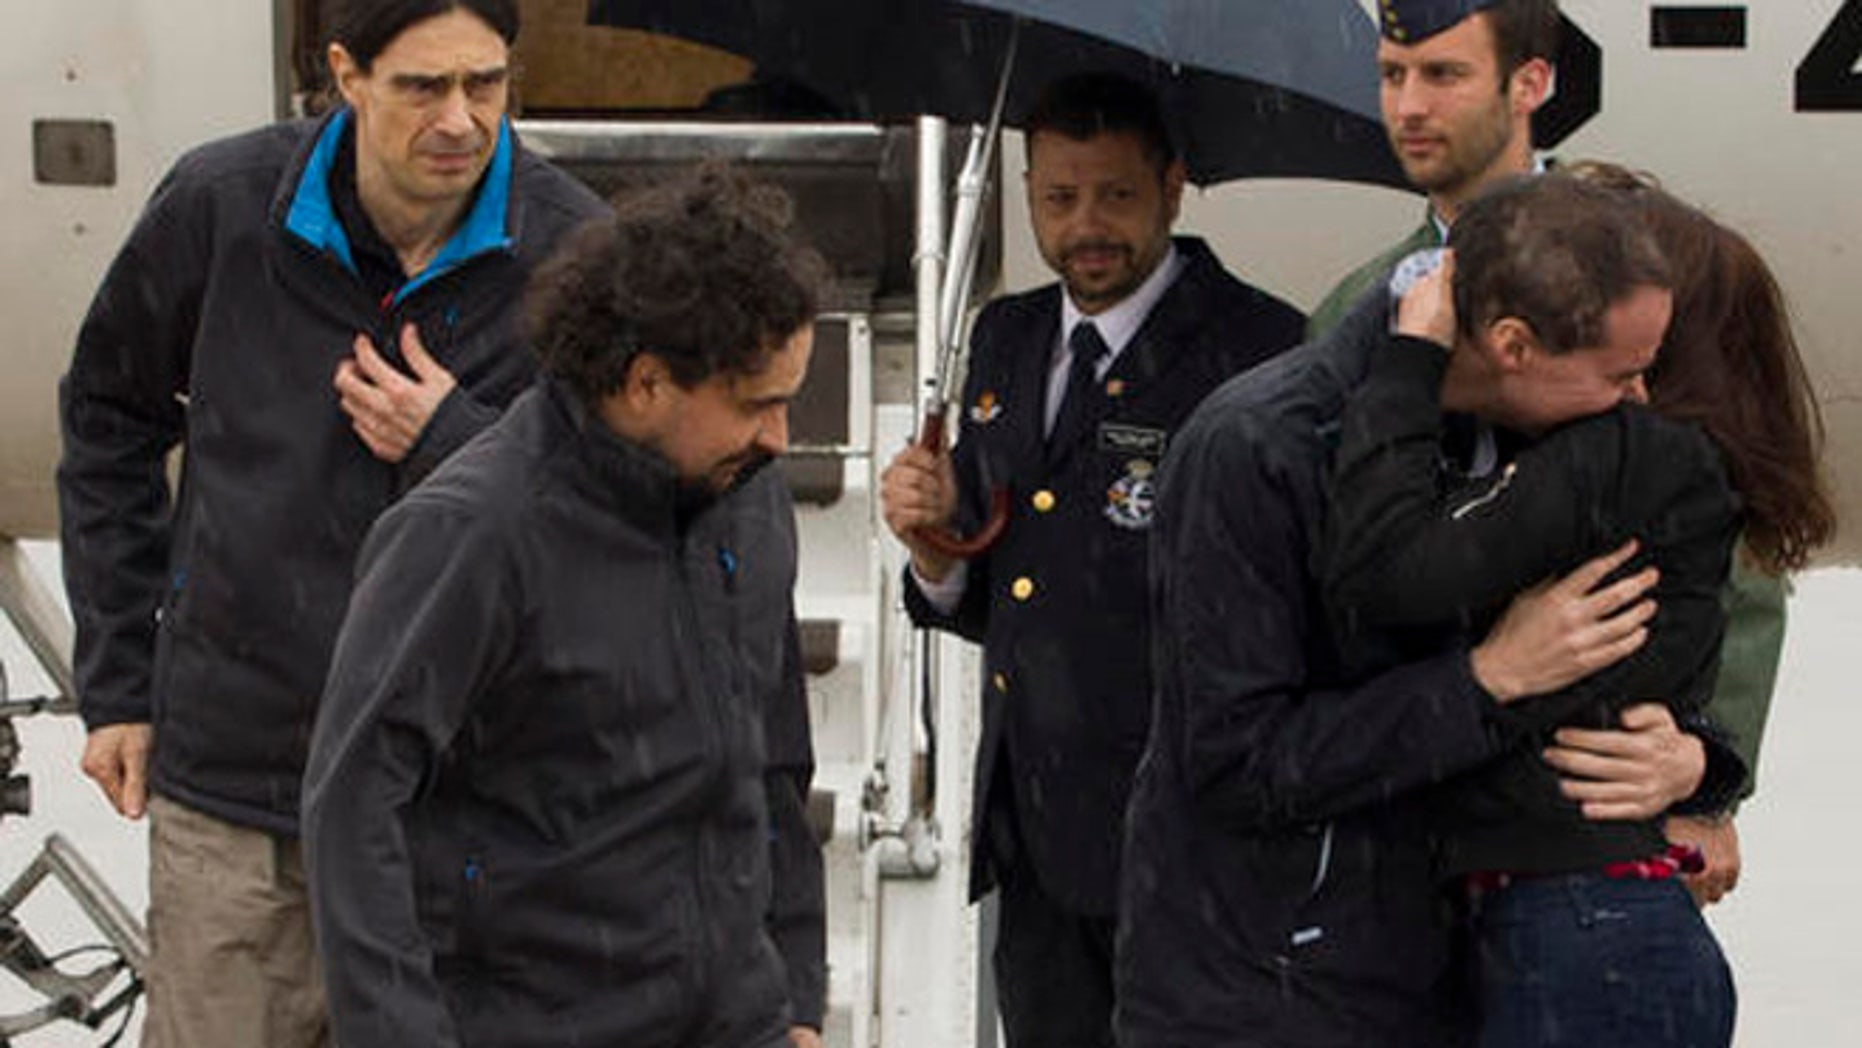 The three freed Spanish journalists Antonio Pampliega, right, Jose Manuel Lopez, left, and Angel Sastre, arrive at the Torrejon military airbase in Madrid, Spain. (POOL Moncloa, via AP)